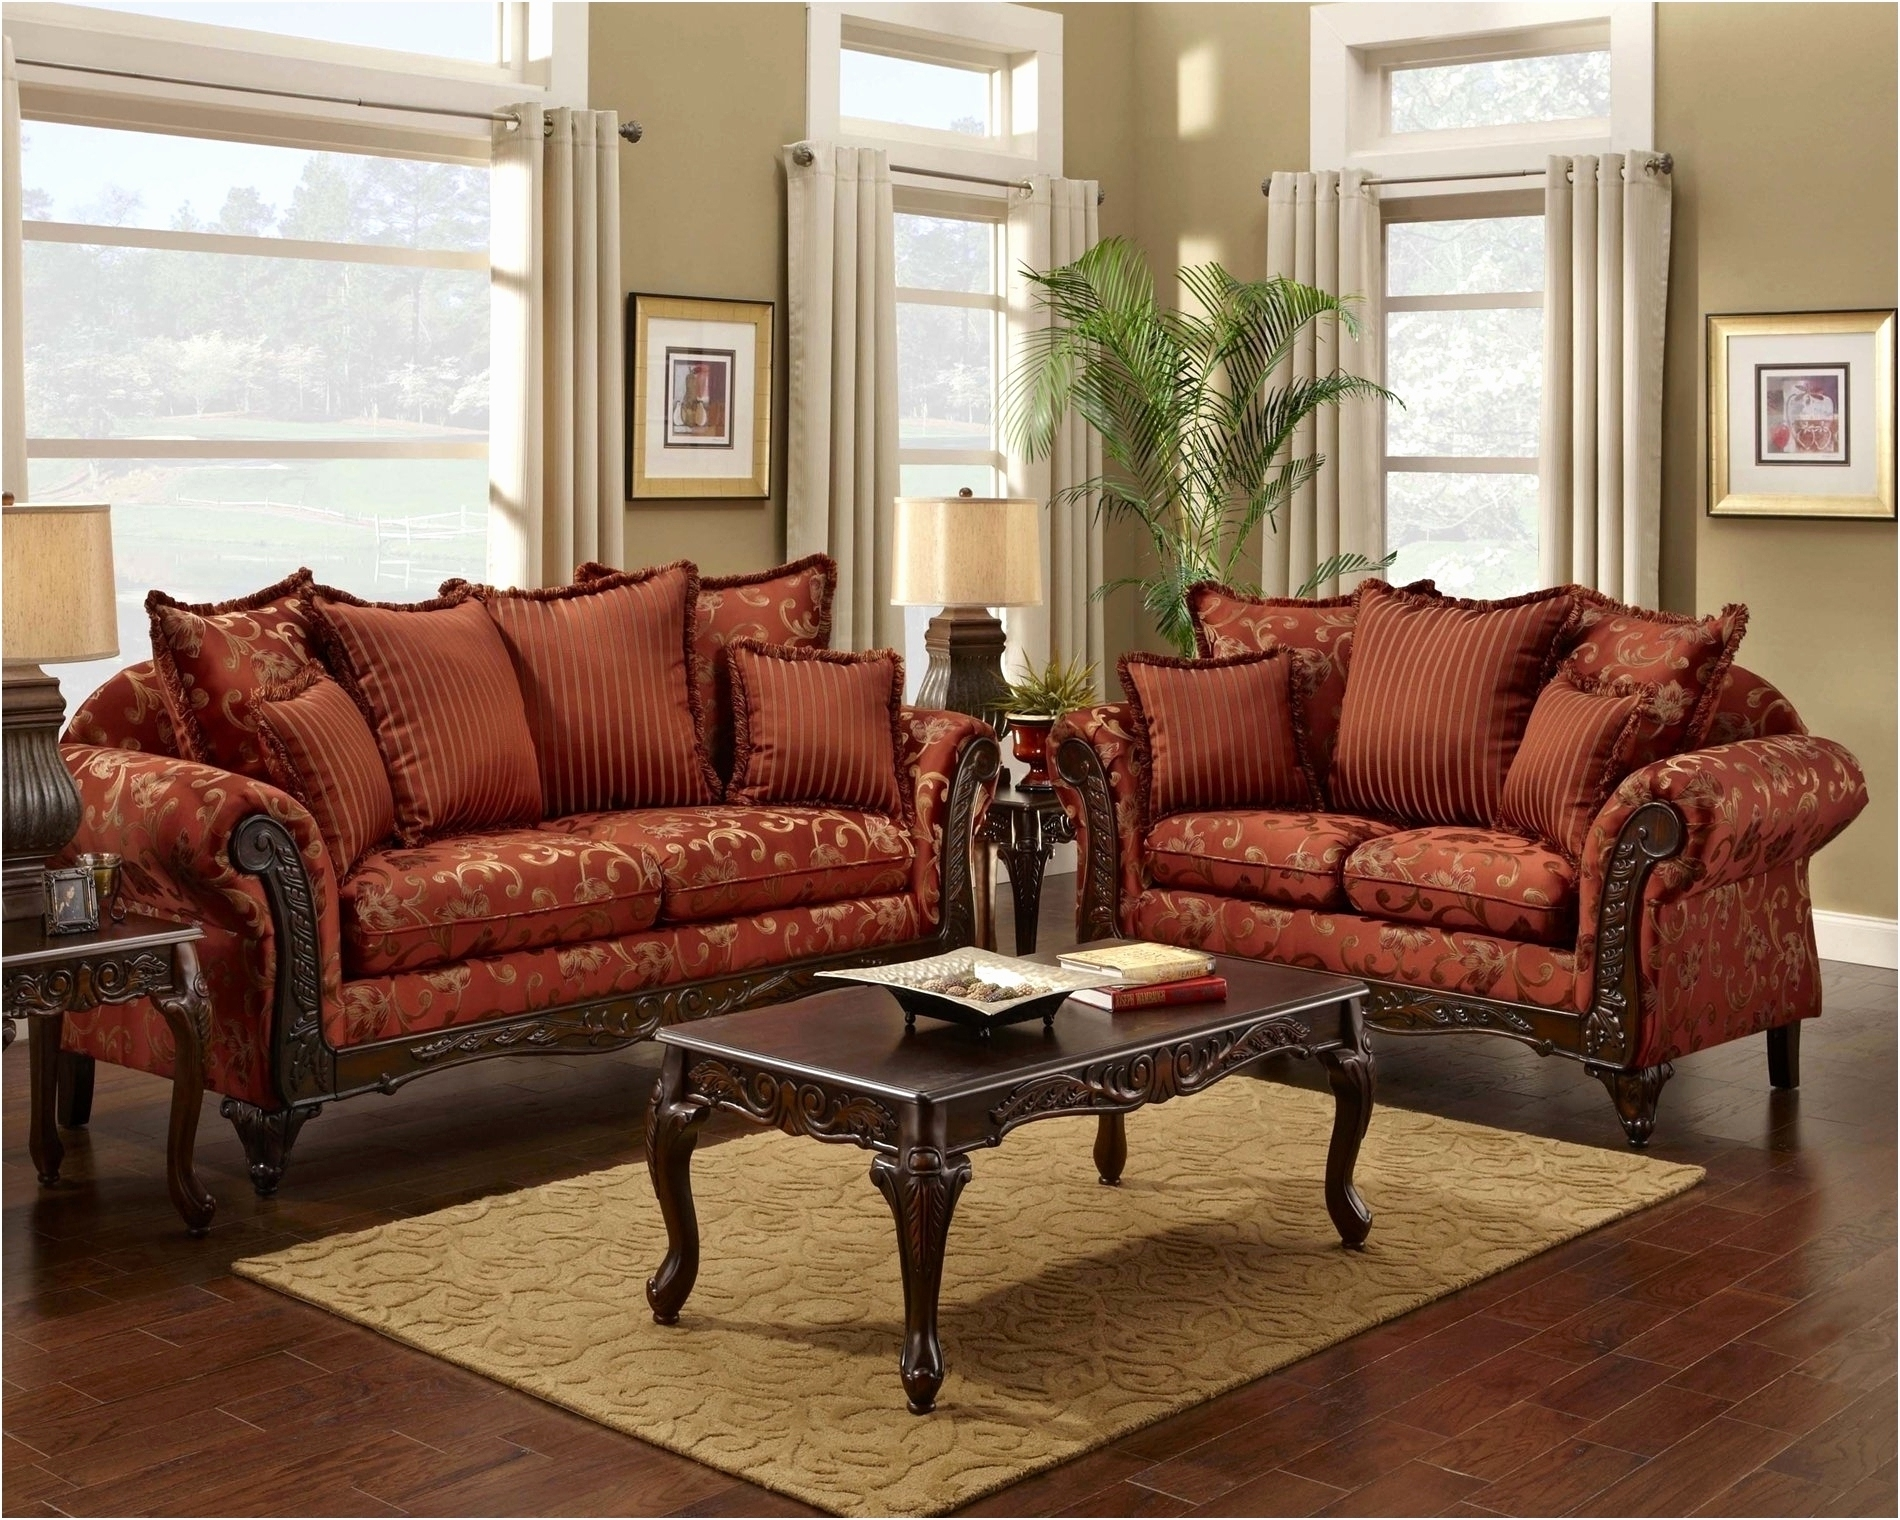 Unique Red Microfiber Couch And Loveseat 2018 – Couches And Sofas Pertaining To Fashionable Kanes Sectional Sofas (Gallery 19 of 20)